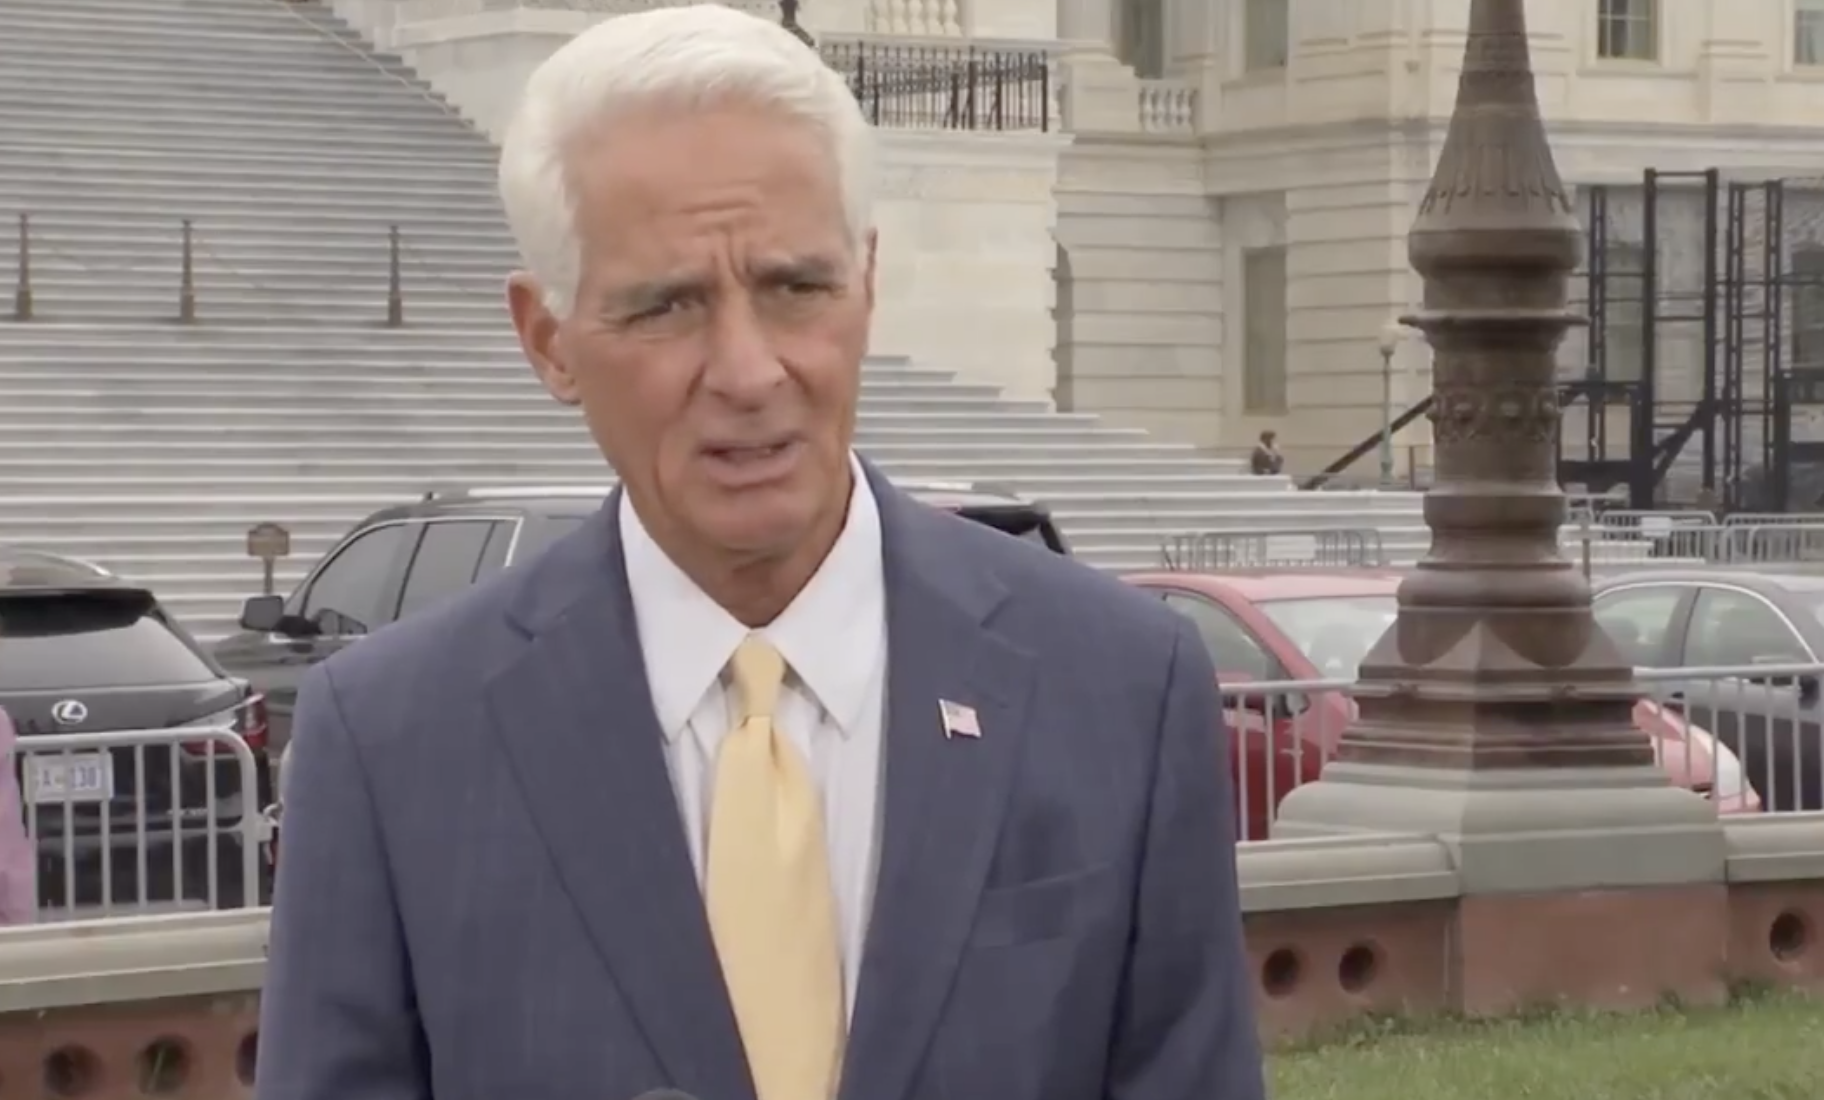 JUICE – Florida Politics' Juicy Read -9.25.20 – Charlie Crist Changes Positions -Major DCCC vs NRCC Fight Begins – Delaying the Census – More…